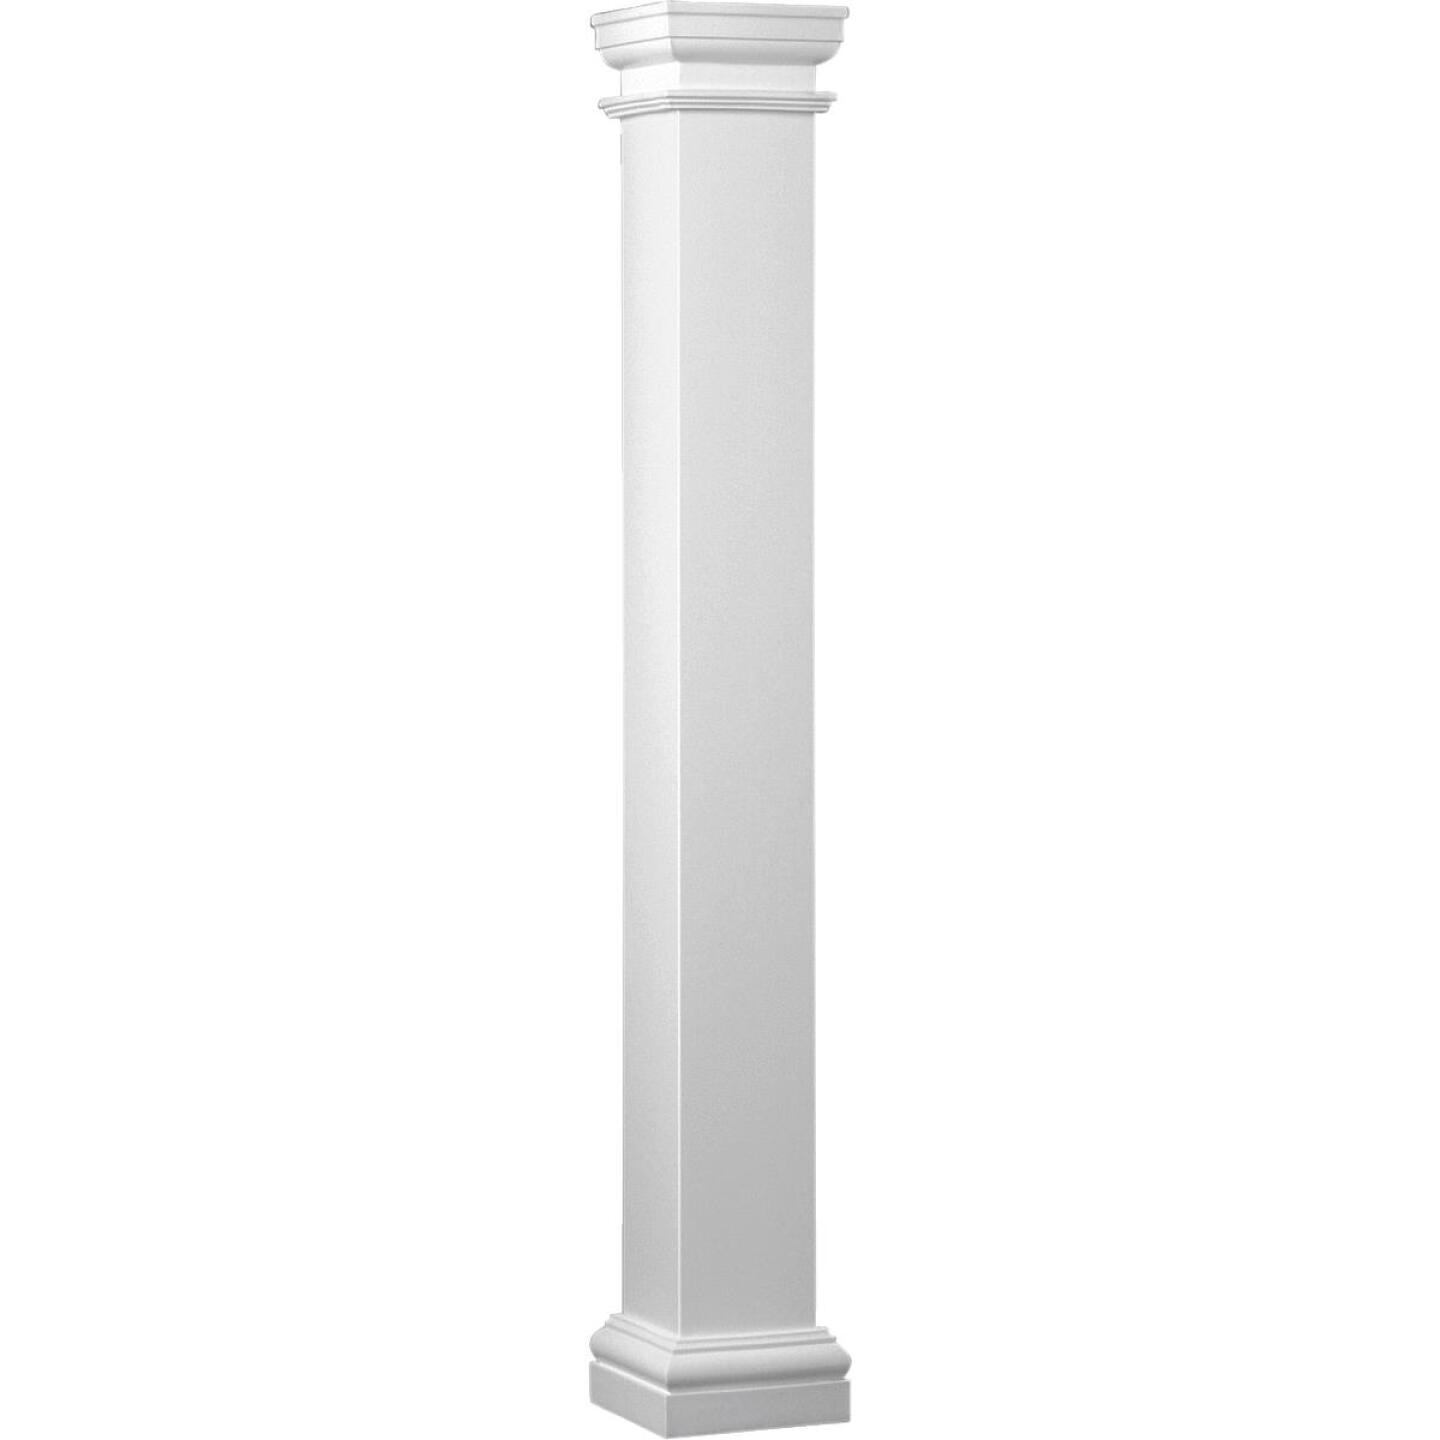 Crown Column Duralite 6 In. x 8 Ft. Smooth White Fiberglass Column Image 1